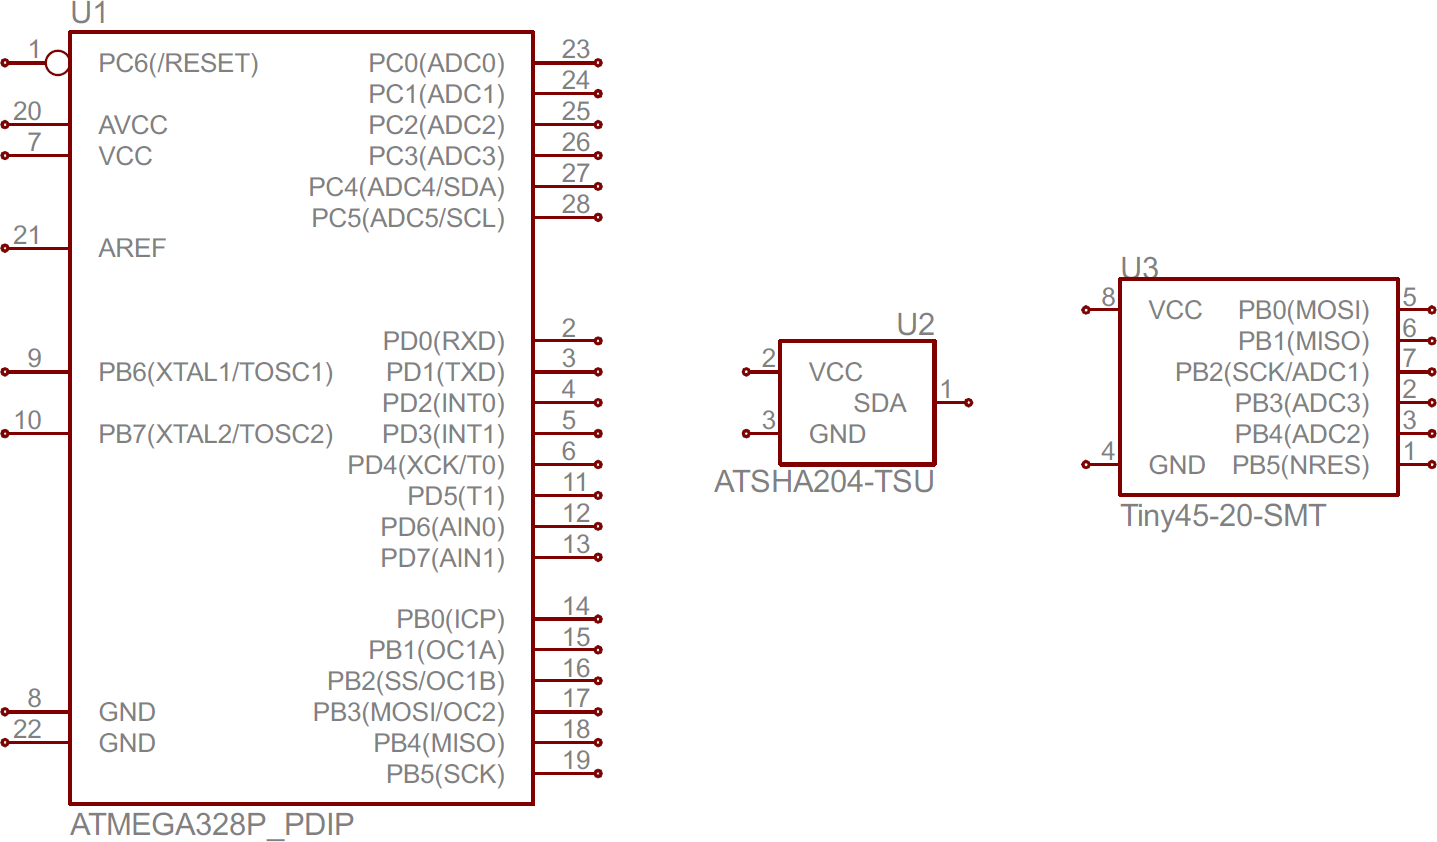 How to read a schematic learnsparkfun atmega328 atsha204 and attiny45 ic symbols schematic asfbconference2016